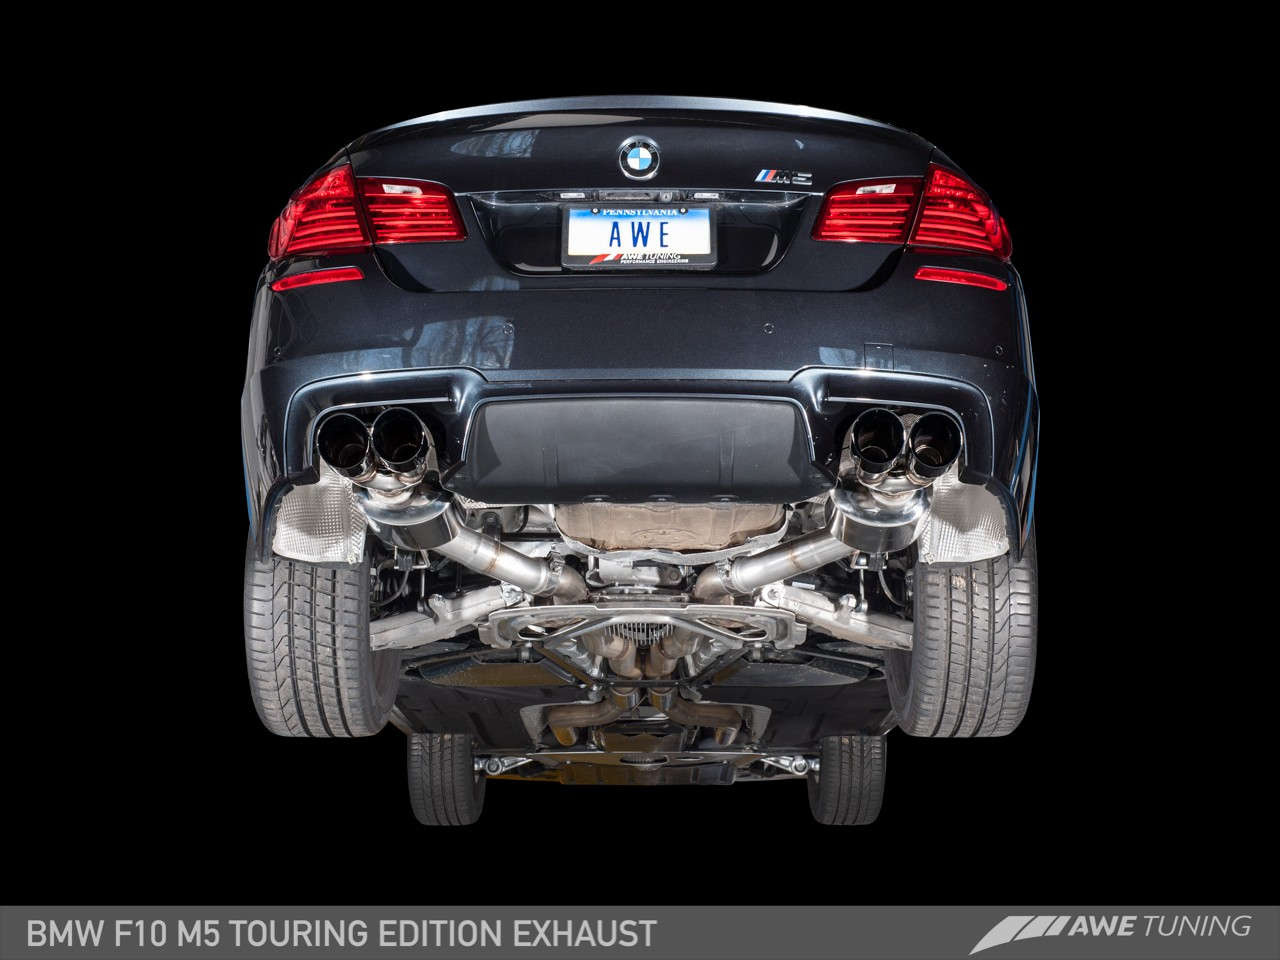 Featuring The Awe Tuning Lifetime Exhaust Warranty